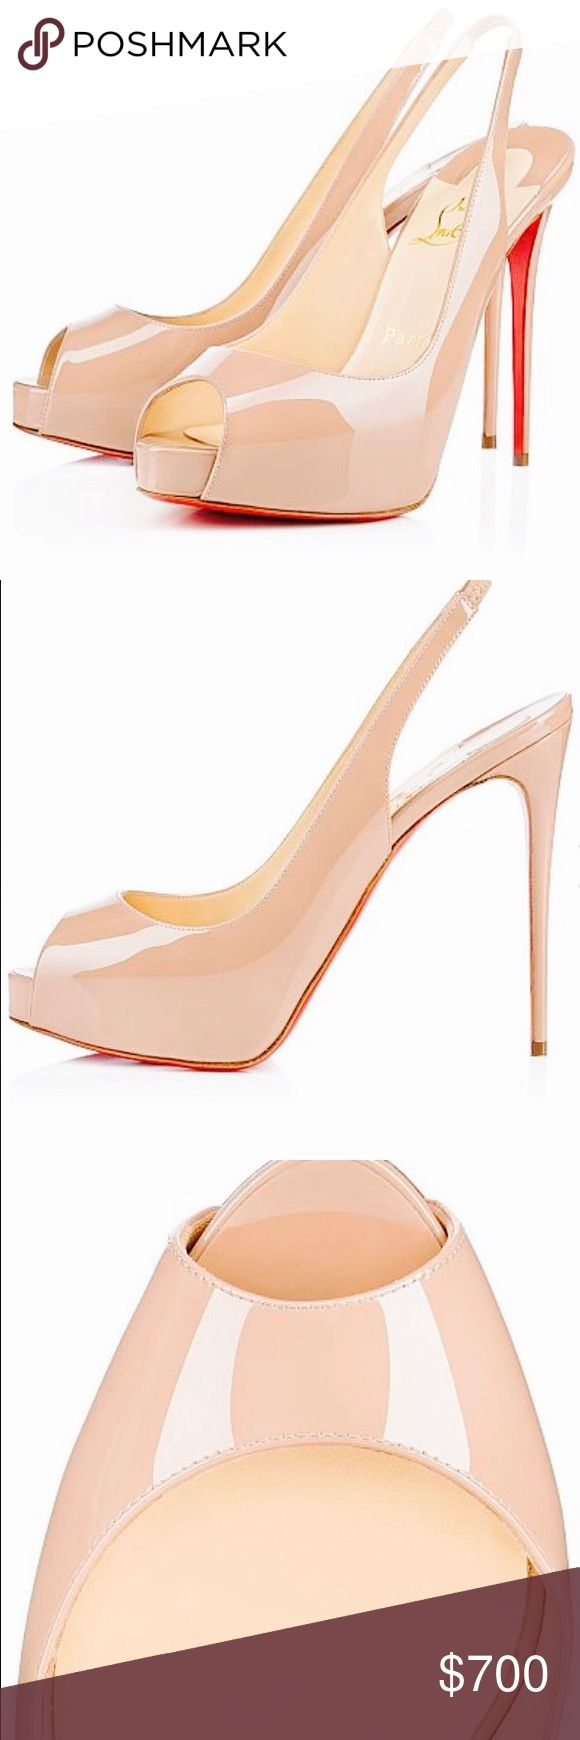 Nude Christian loubiton shoes Used, good condition. Christian Louboutin Shoes Heels